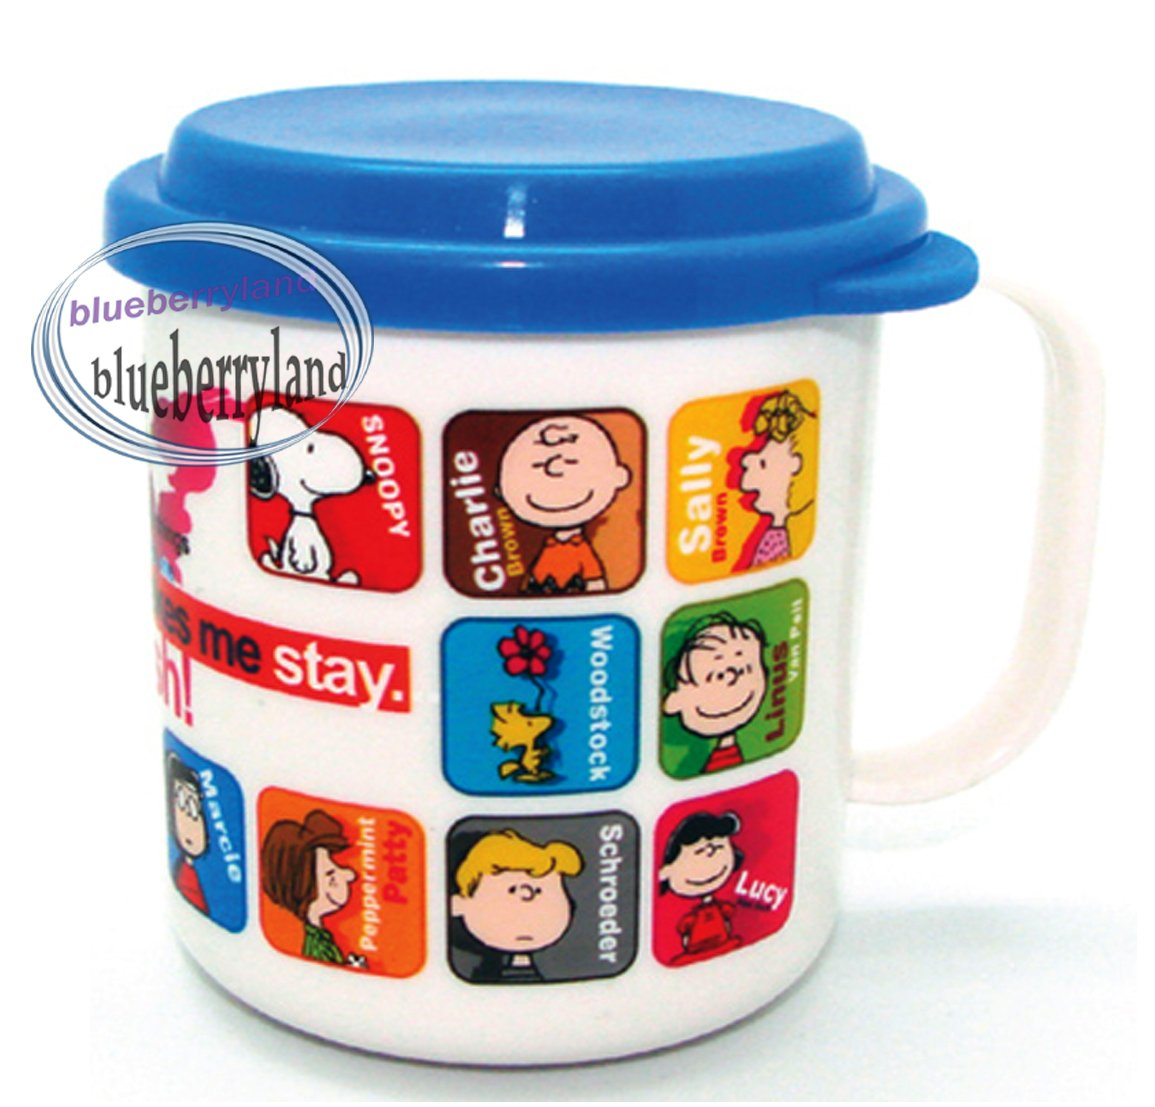 Peanuts SNOOPY Plastic Cup mug 230ml kids child